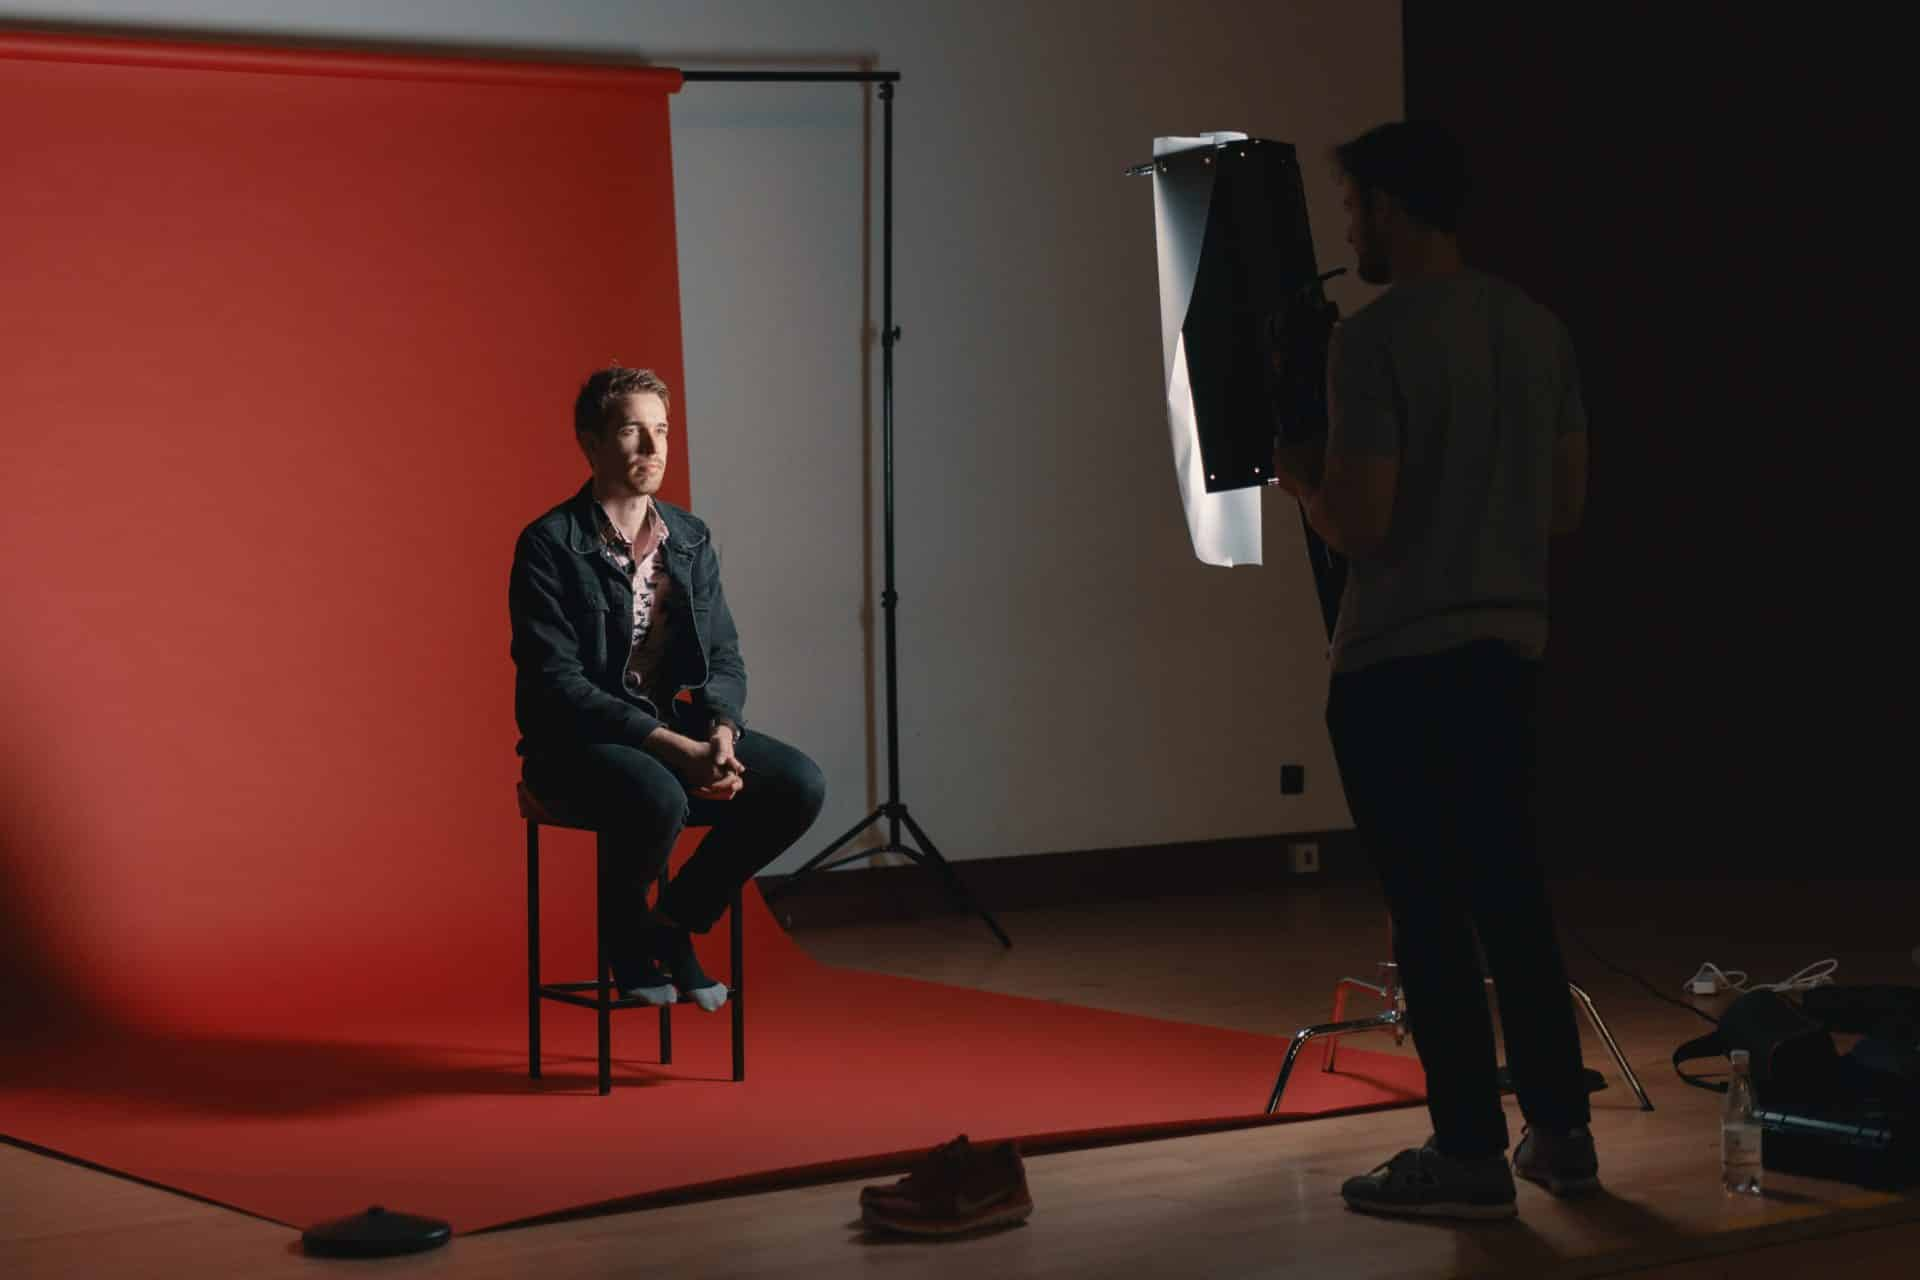 Best Zoom and Video Interviewing Tips